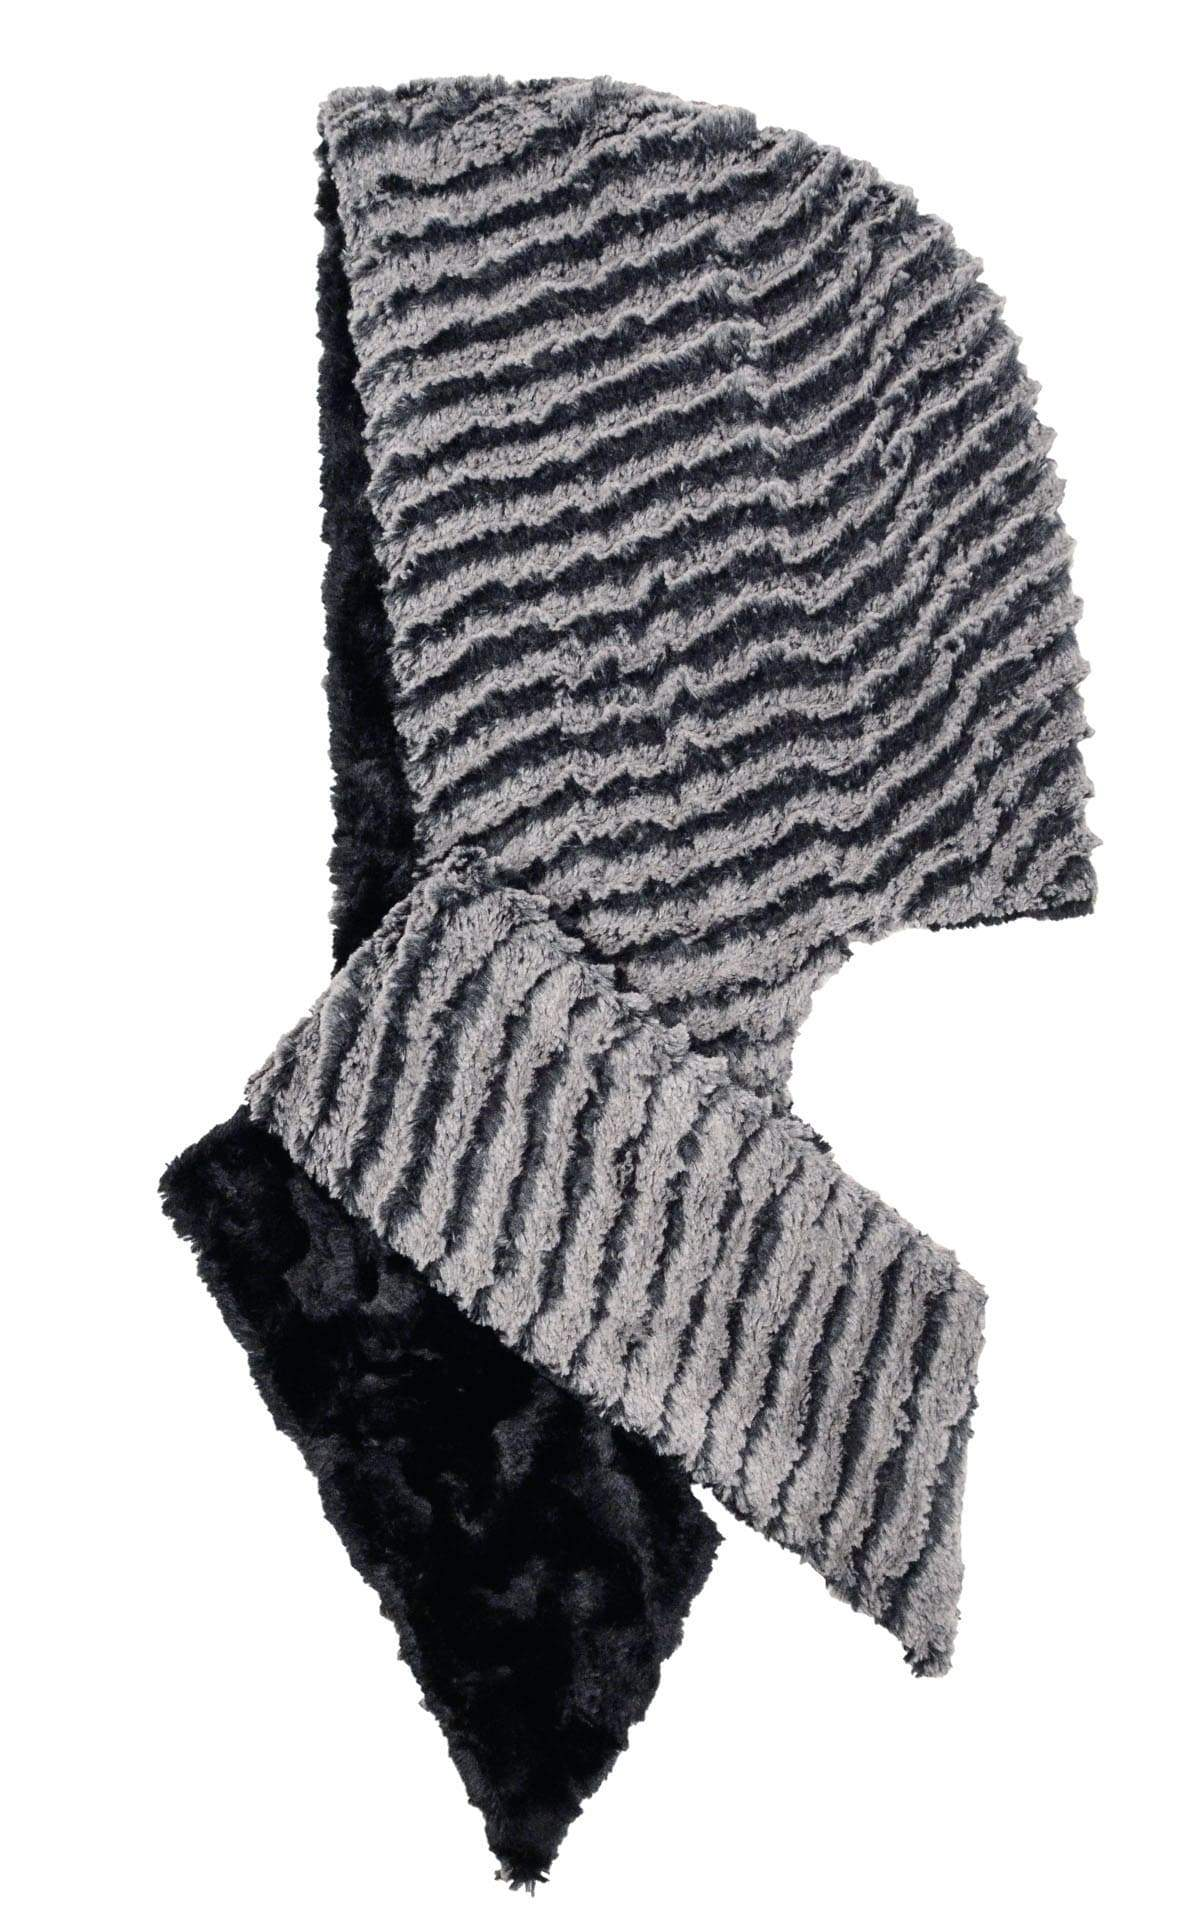 Hoody Scarf - Desert Sand Faux Fur with Cuddly Fur in Black (Rattlesnake Ridge Combos Sold Out)